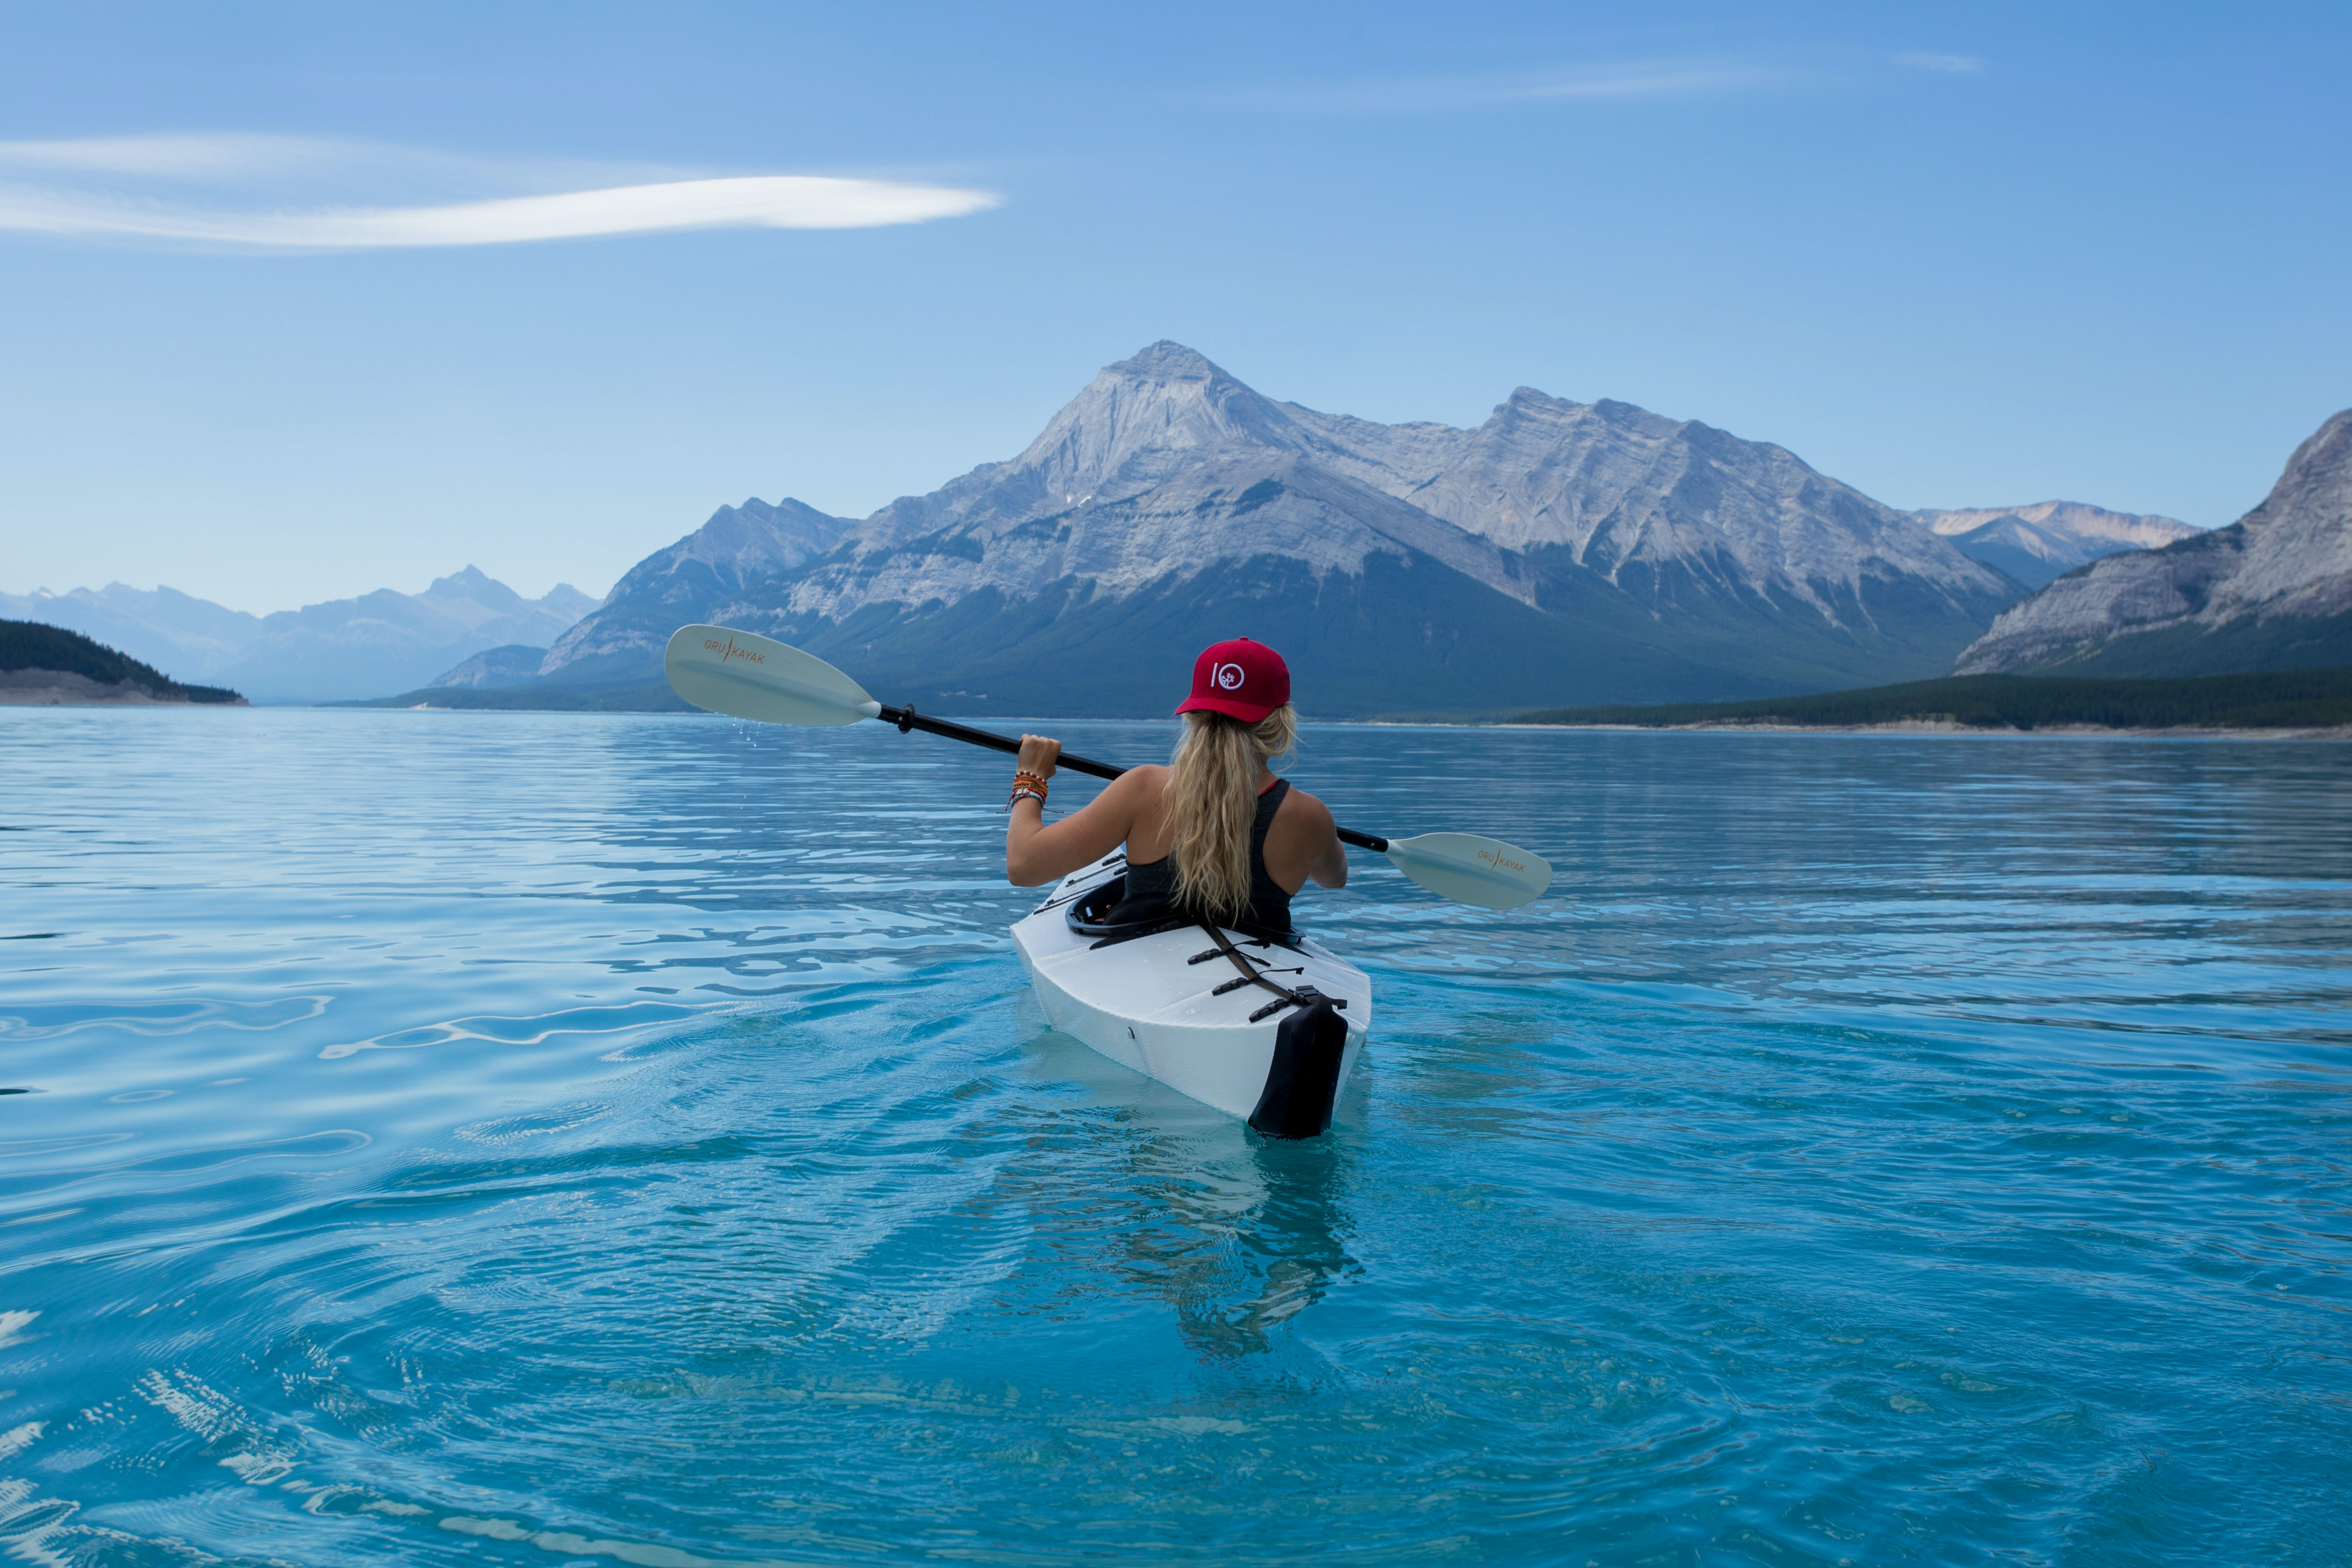 A woman wearing a red hat in a white kayak paddling on crystal blue water in Nordegg